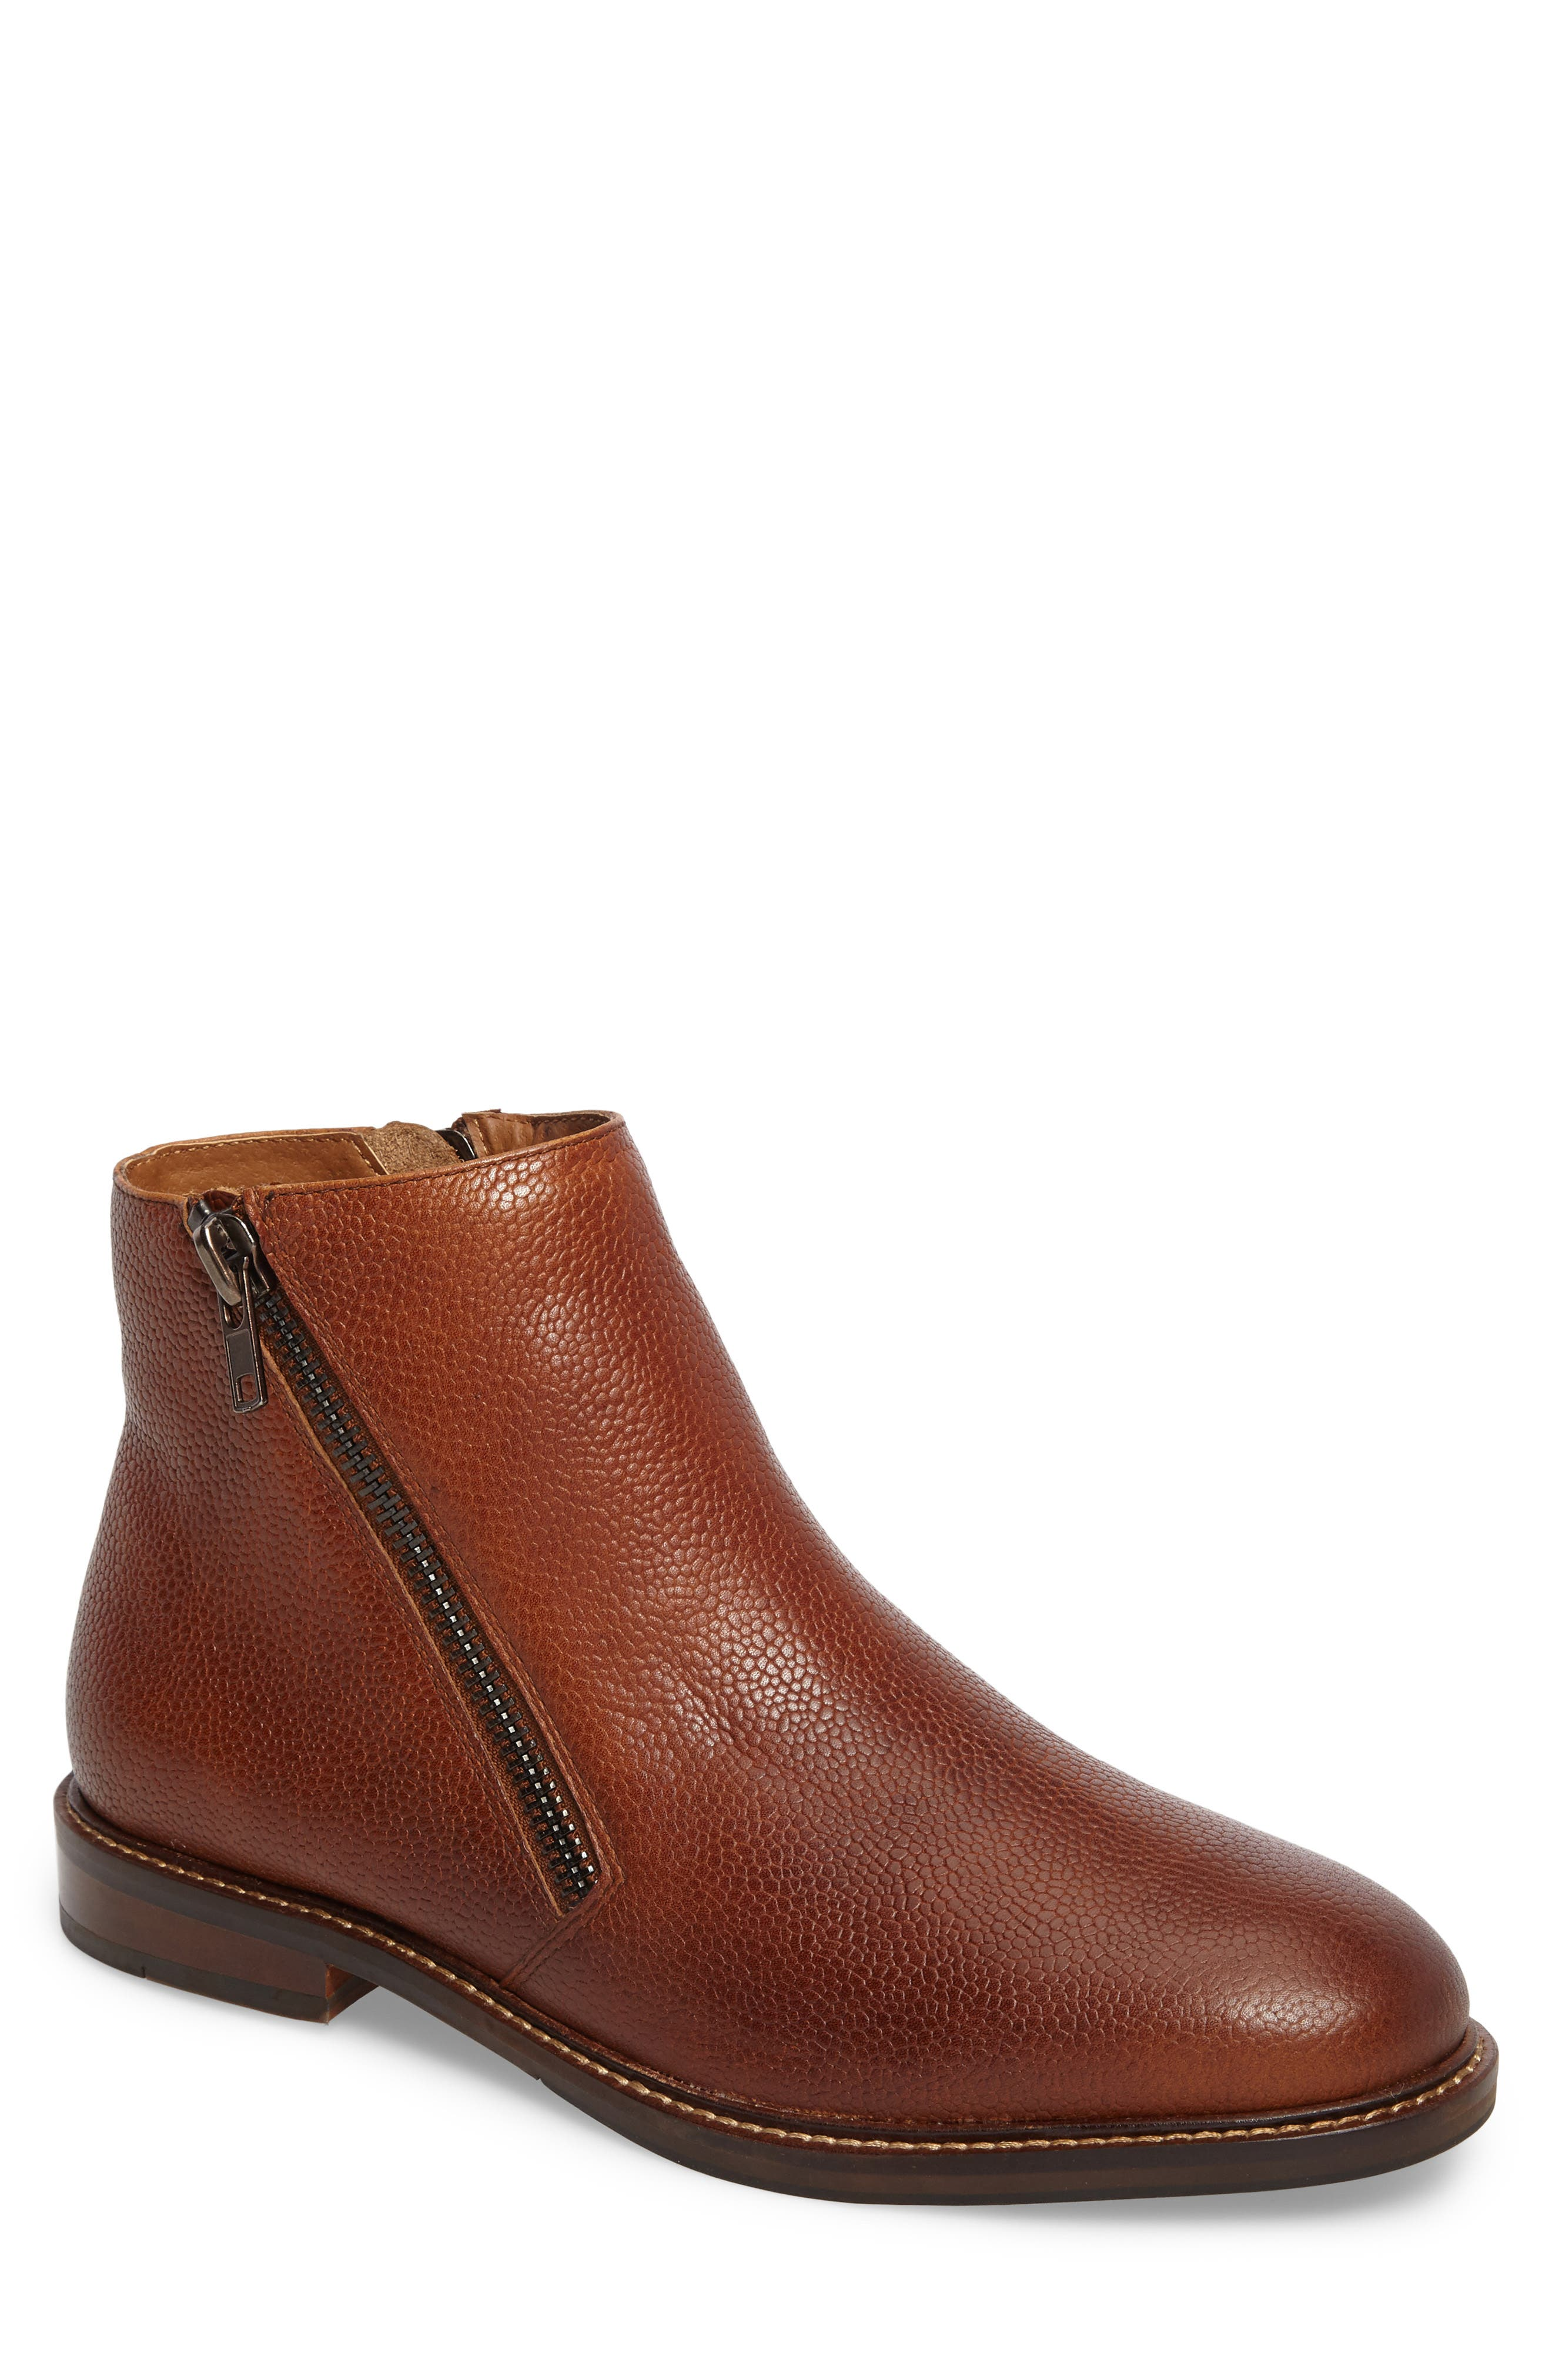 Alternate Image 1 Selected - Kenneth Cole Reaction Zip Boot (Men)